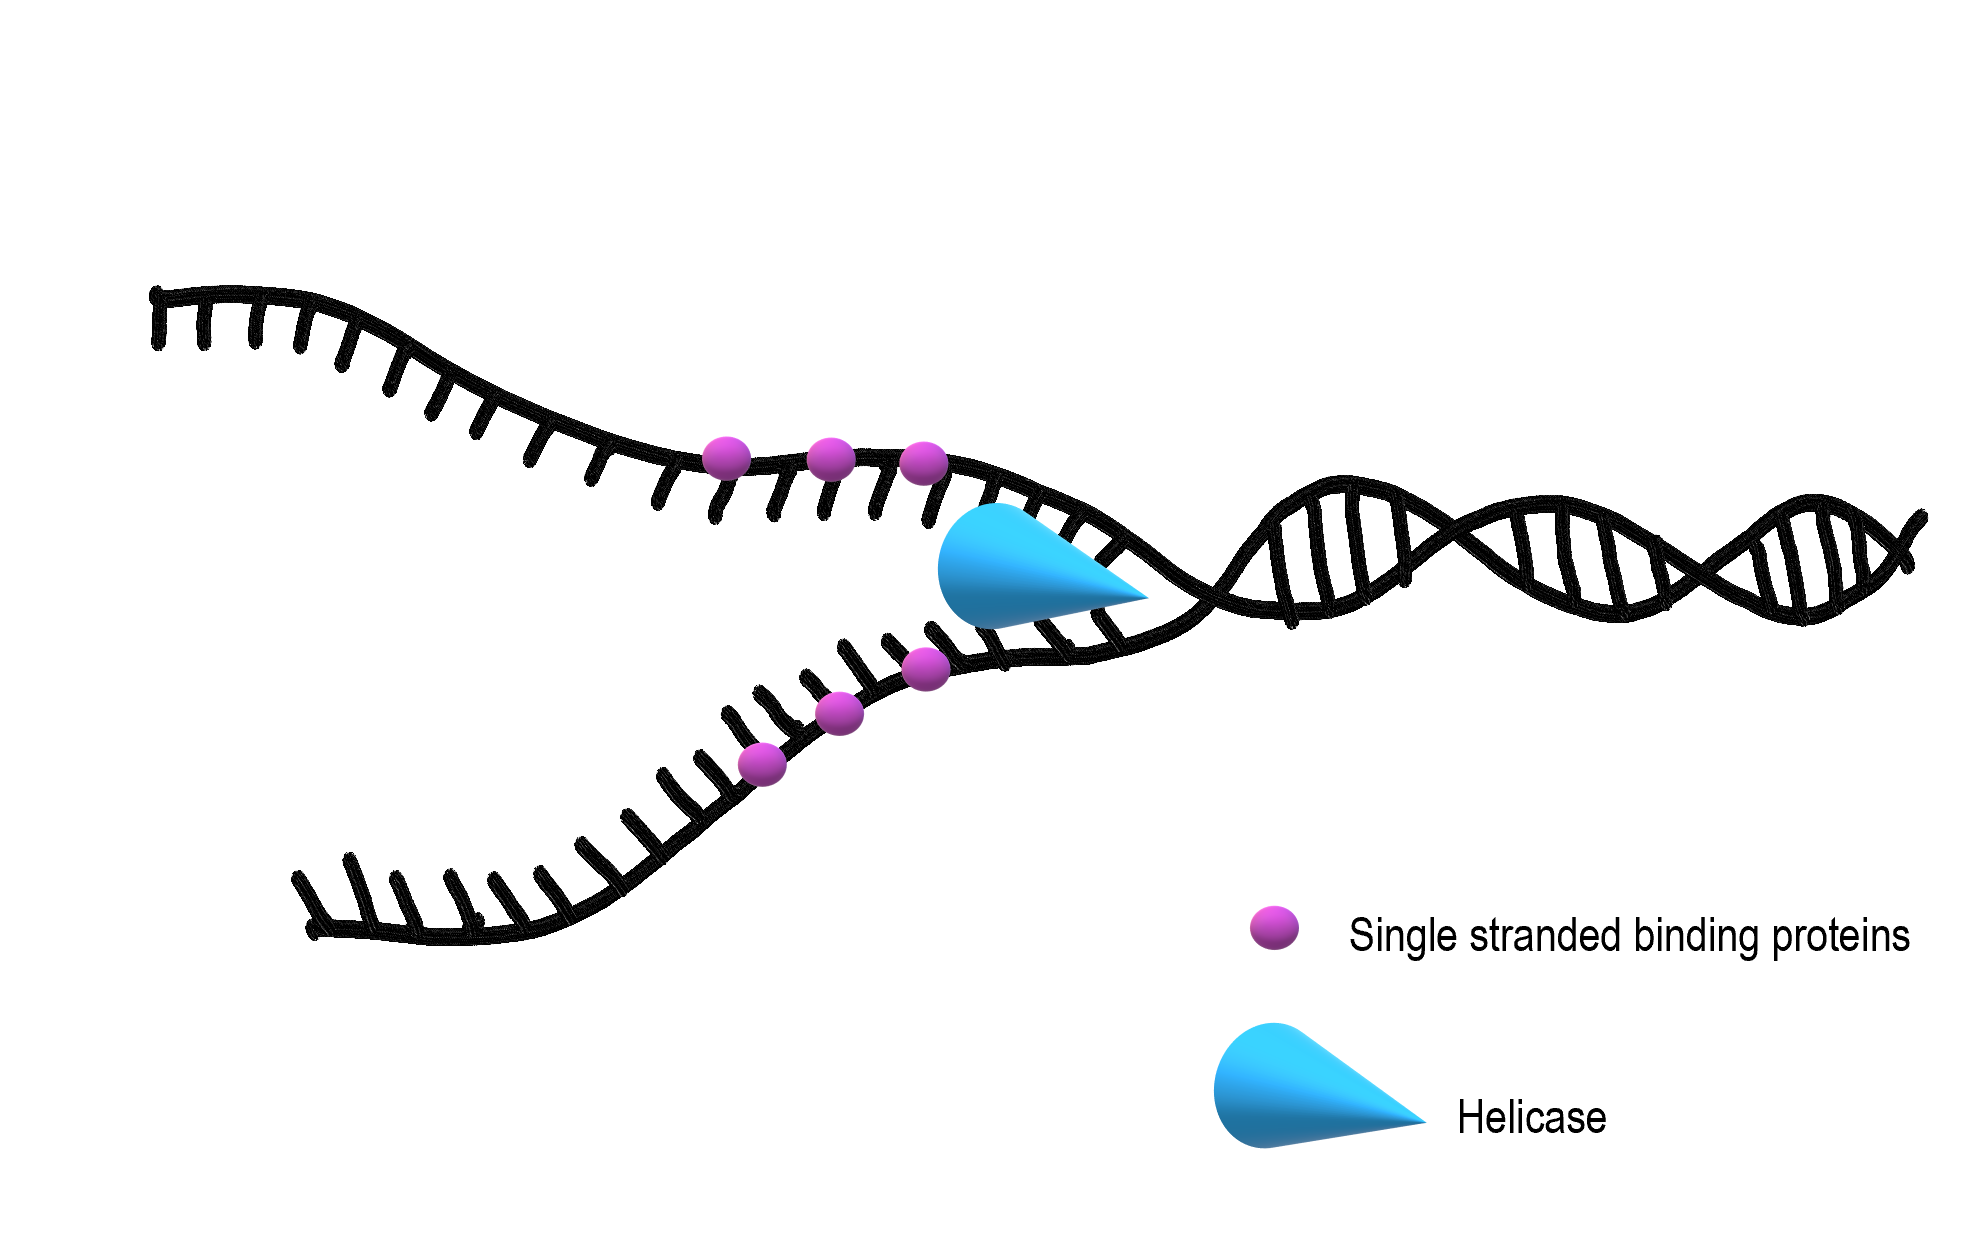 Image shows a diagram of helicase unwinding and unzipping a double stranded section of DNA. Single stranded binding proteins bind to the newly separated strands to prevent them from re-forming the hydrogen bonds.